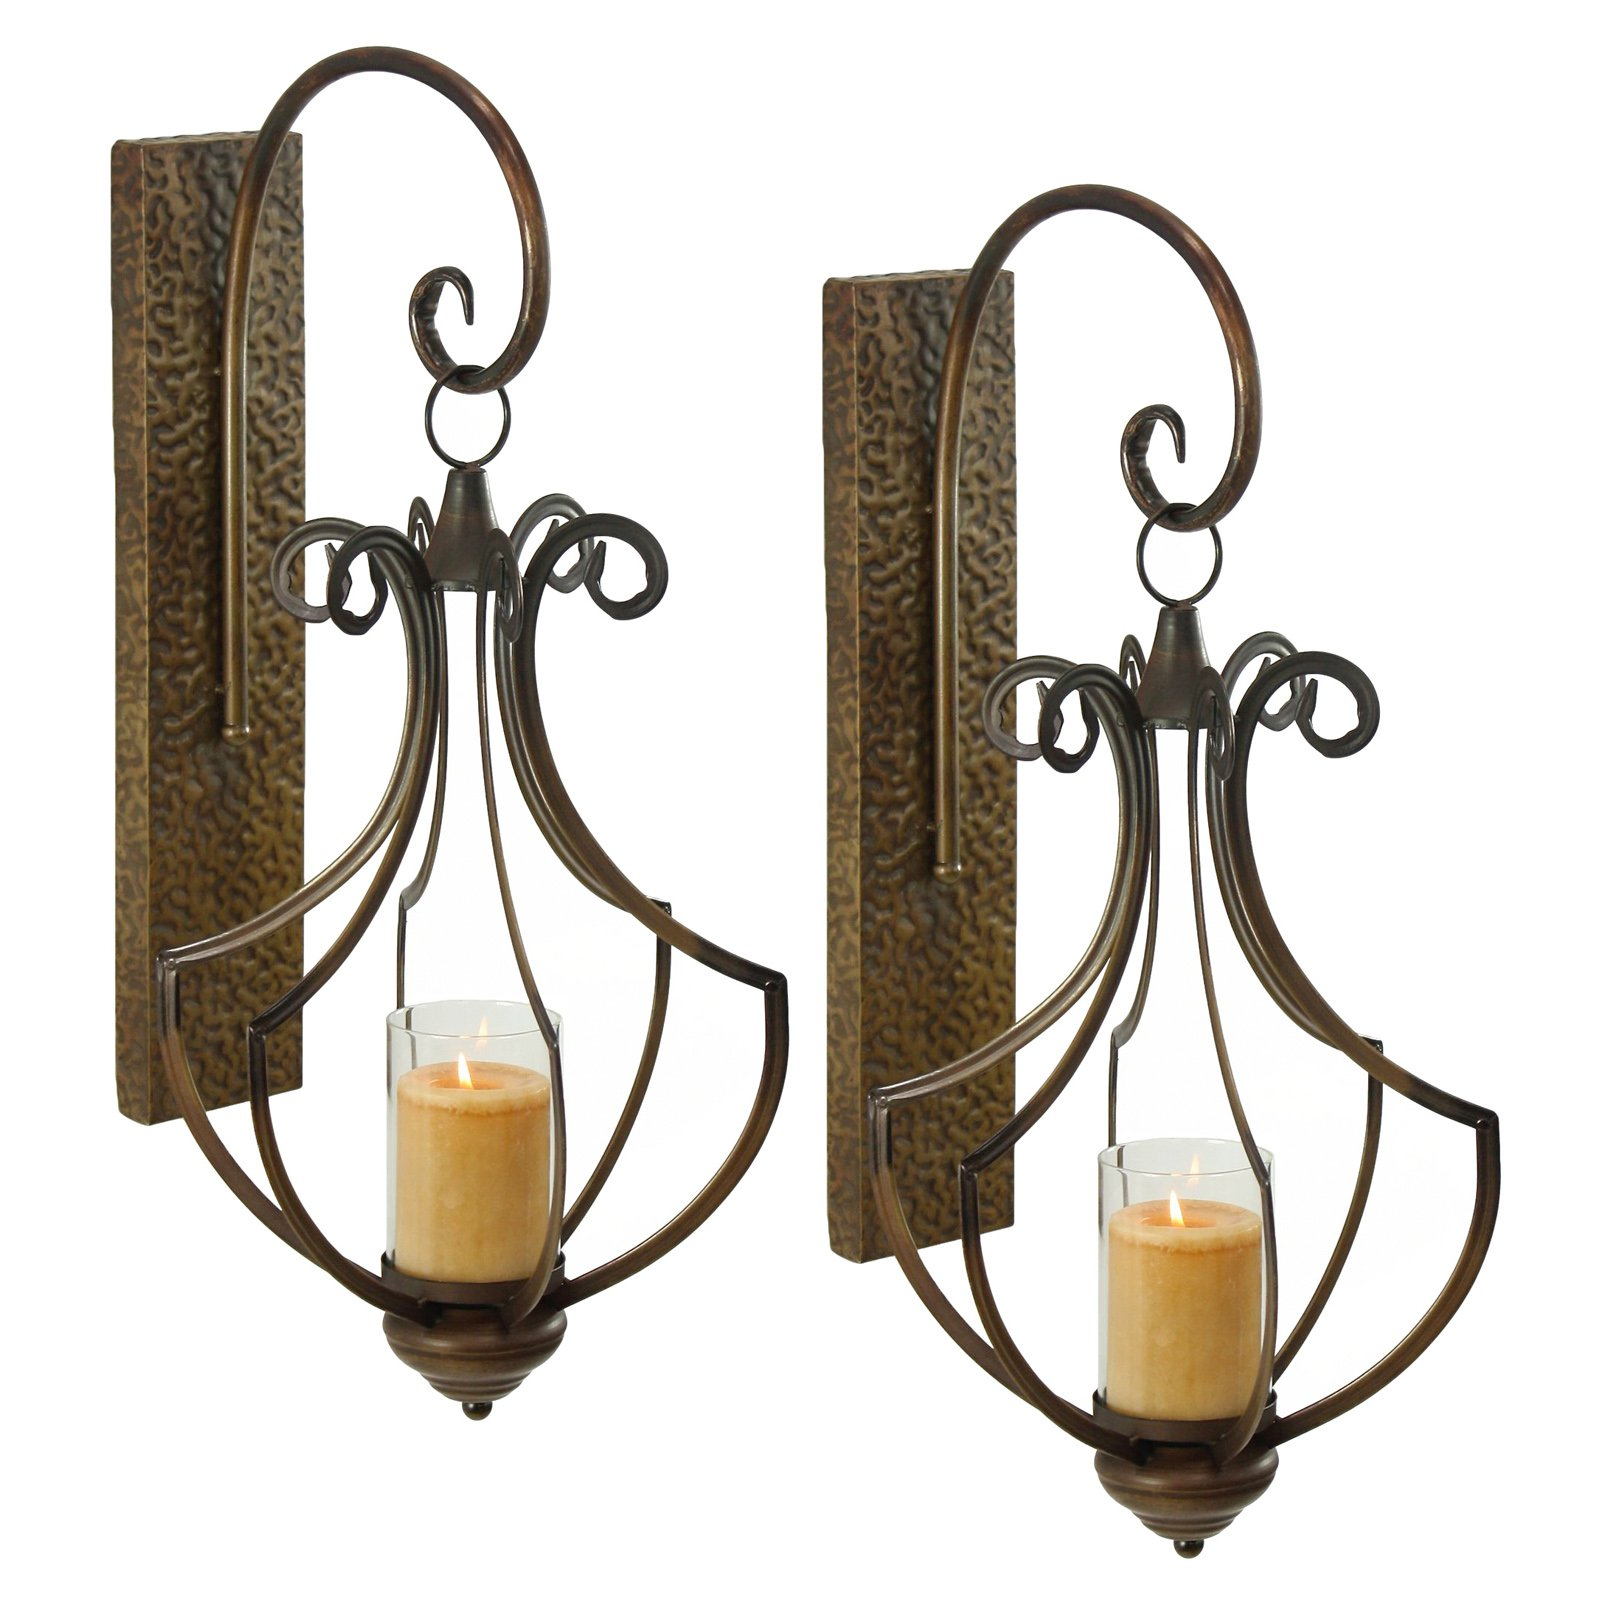 Ribley Candle Wall Sconce (Set of 2)